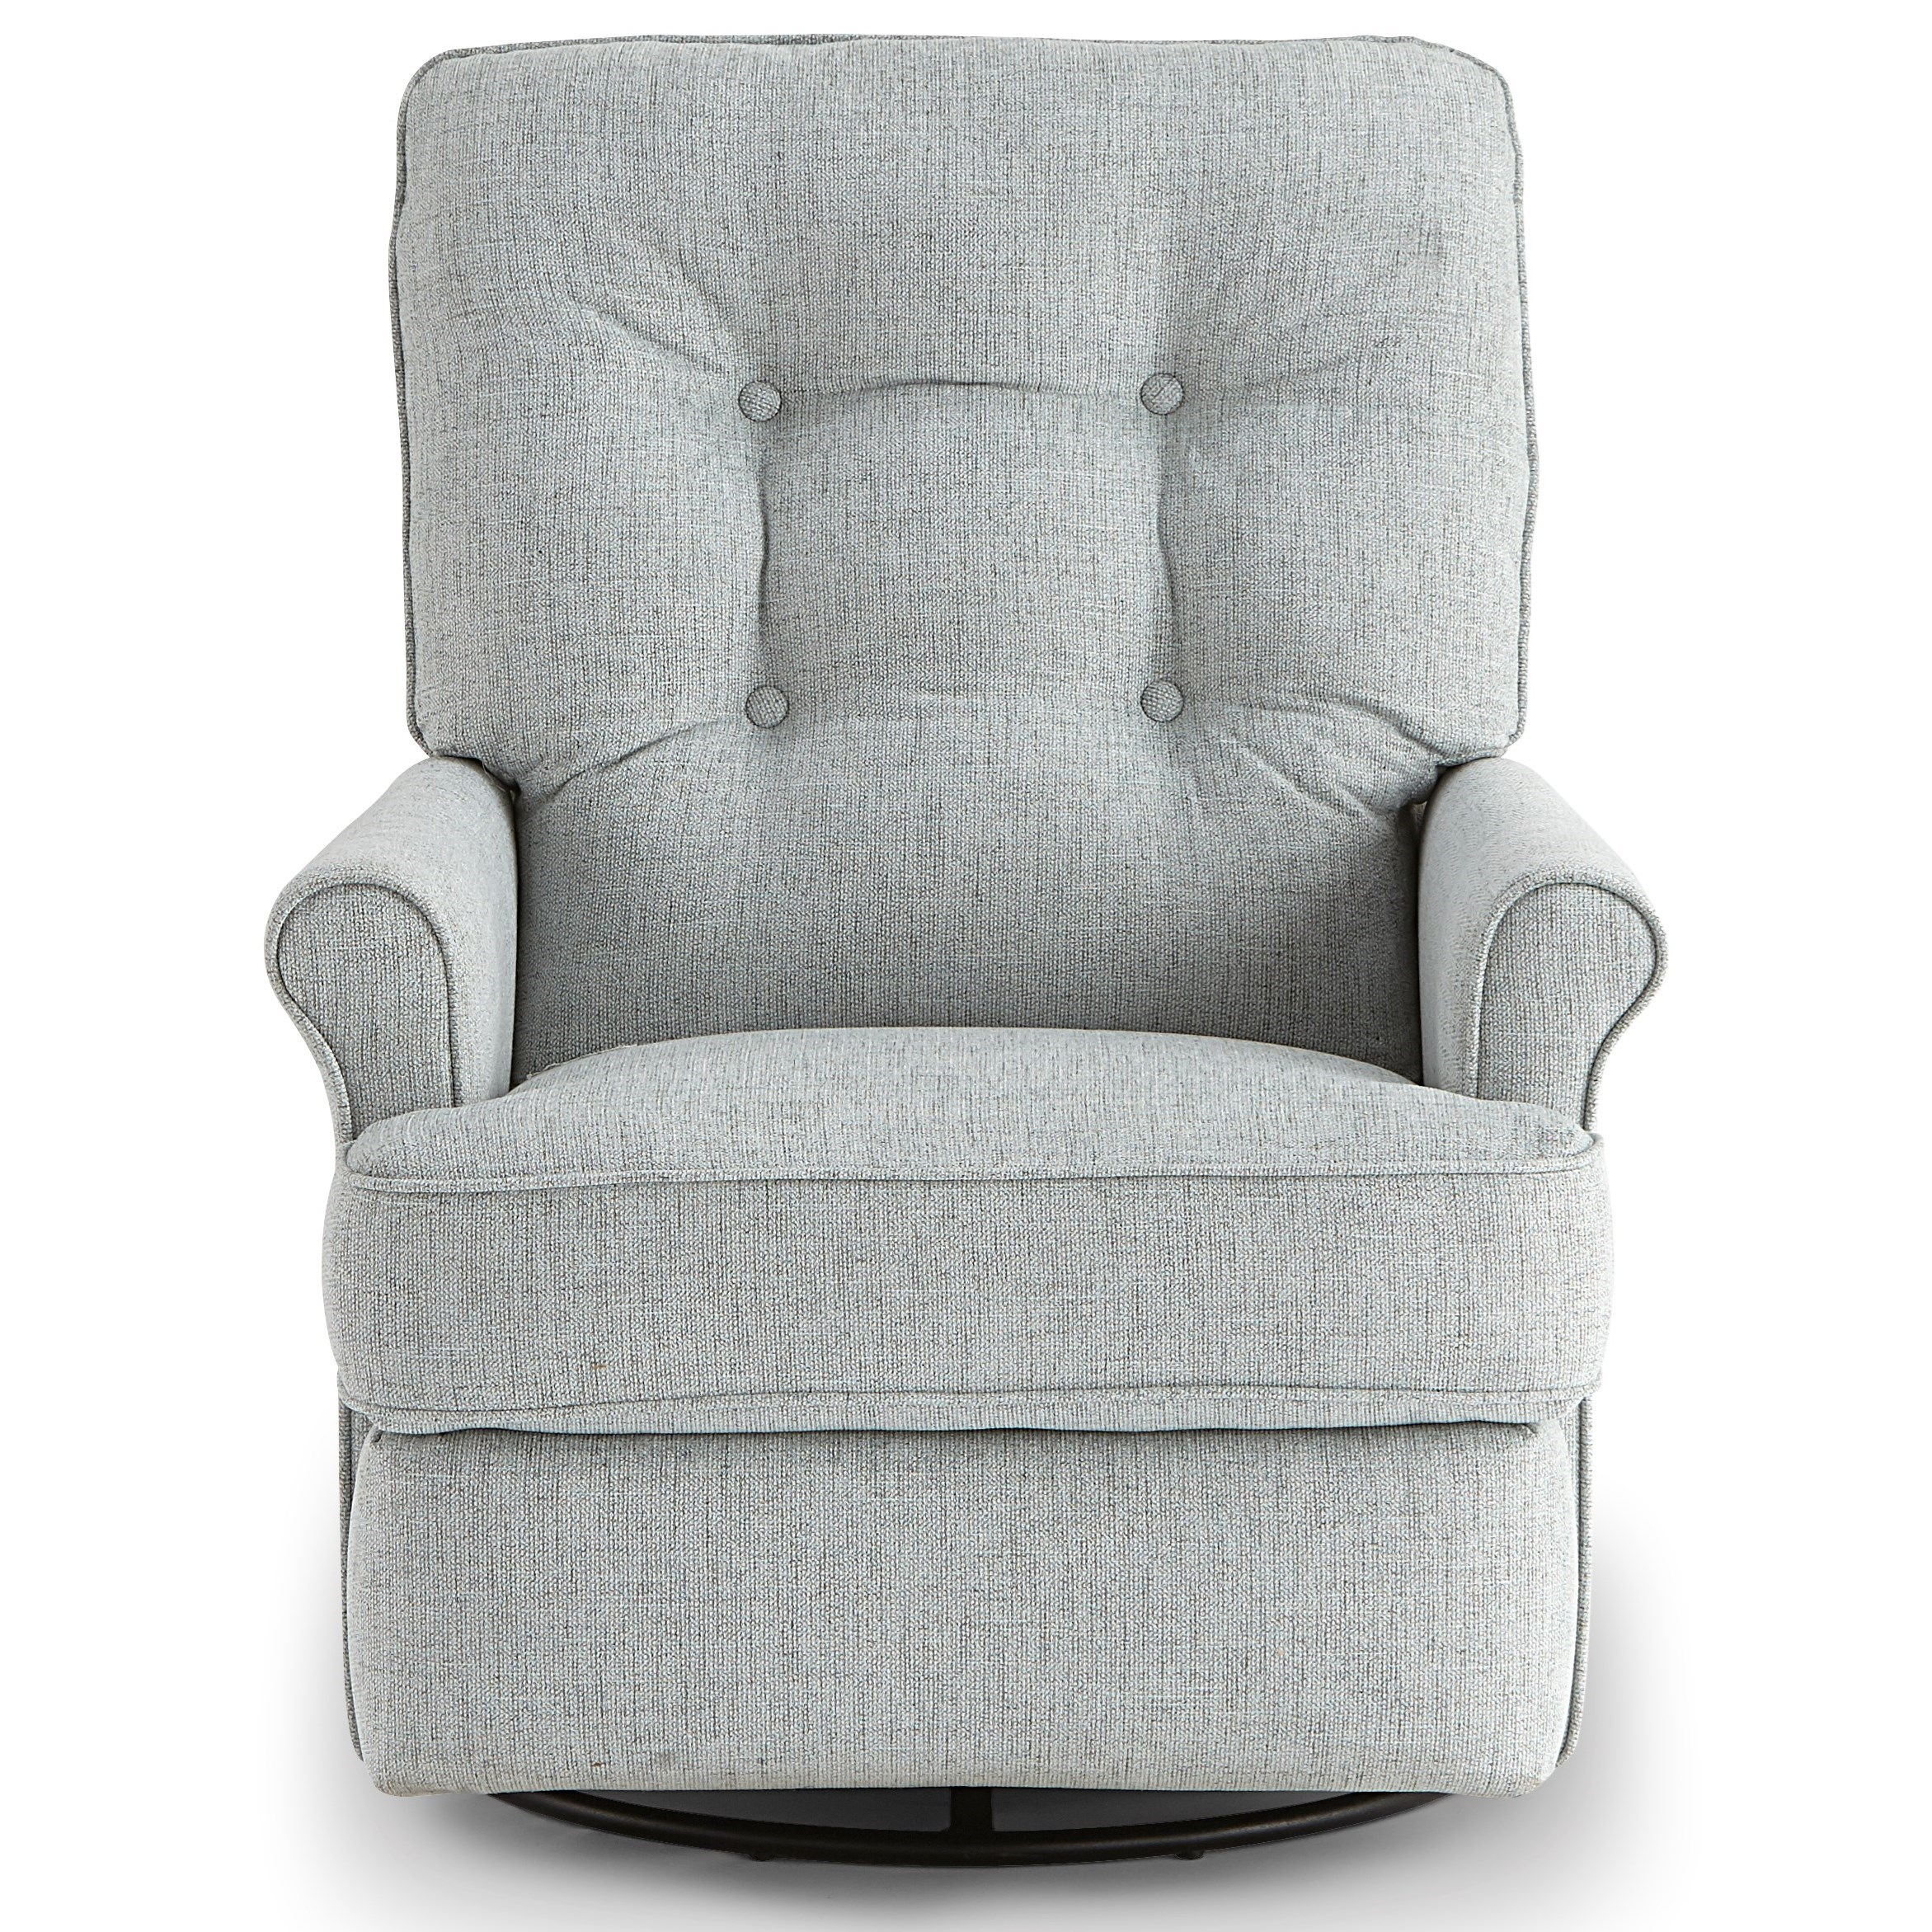 Carissa Swivel Glider Recliner w/ Inside Handle by Best Home Furnishings at Walker's Furniture